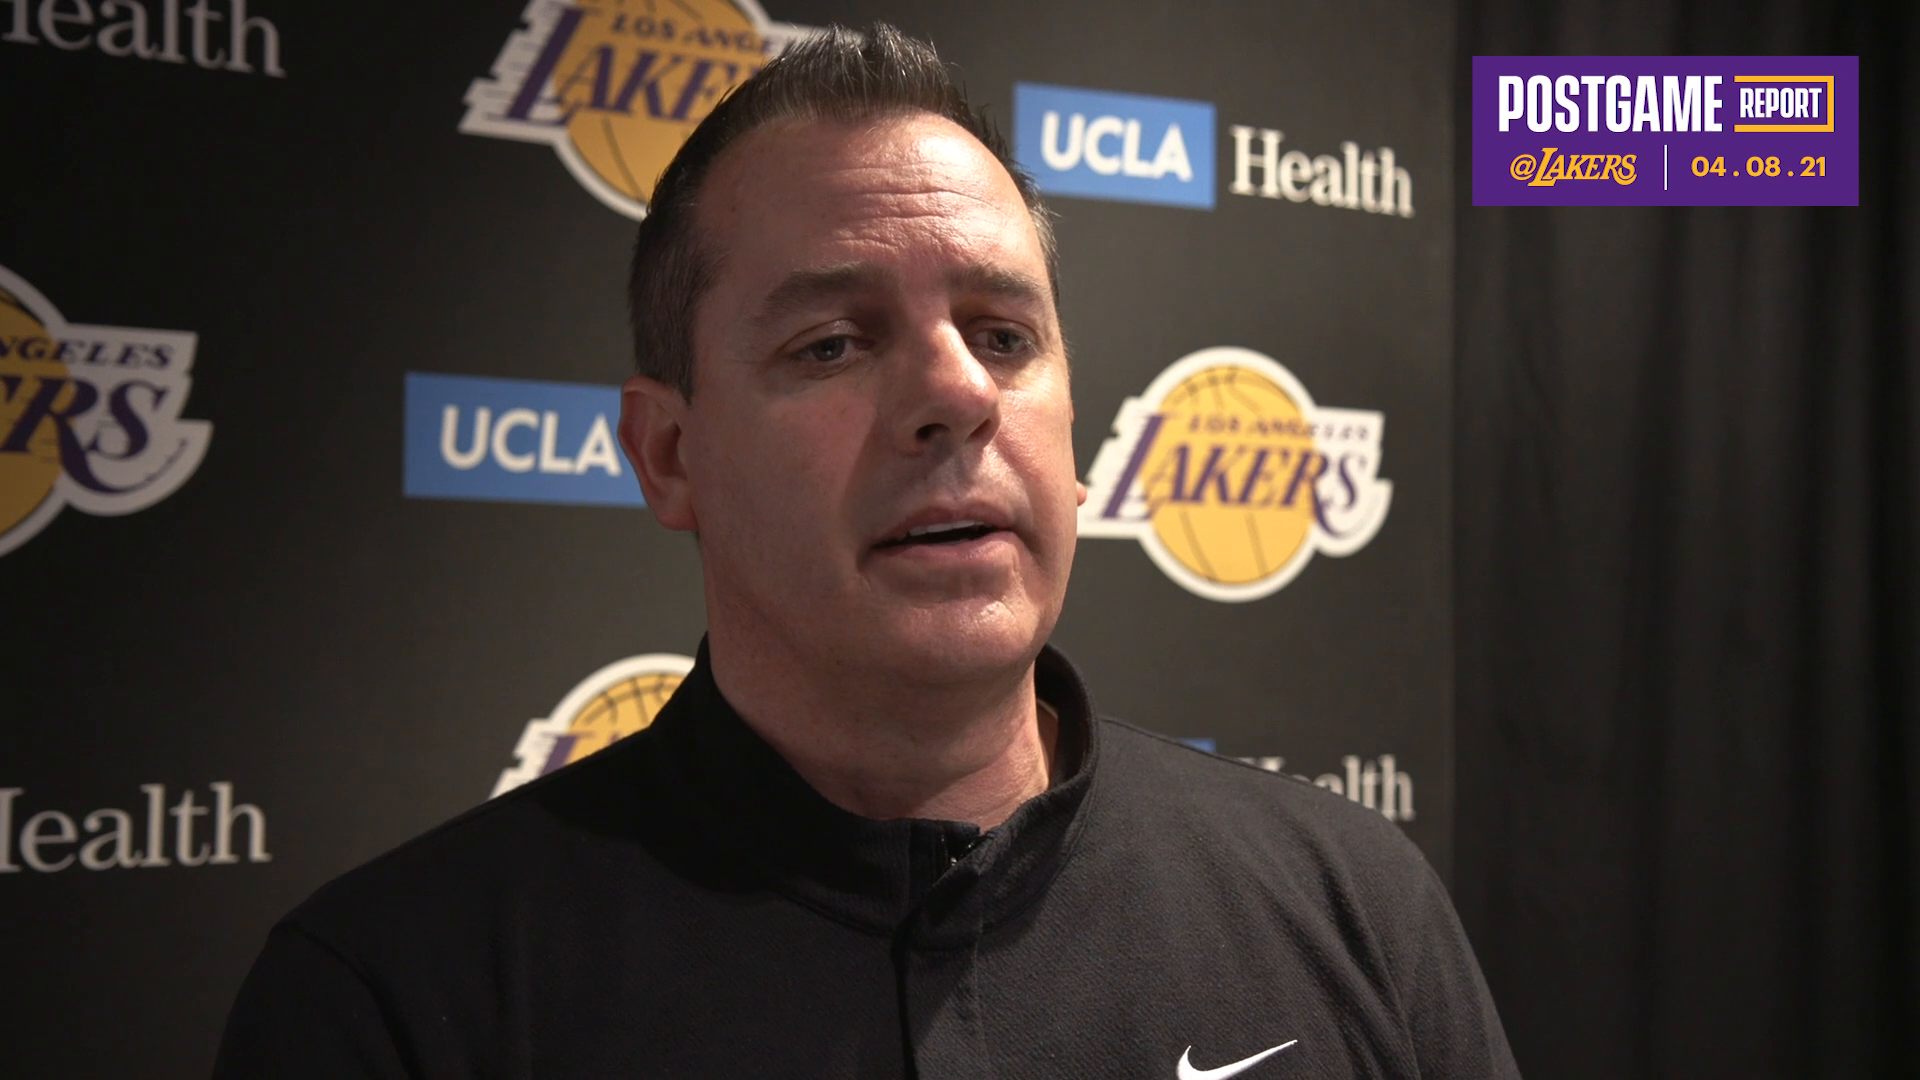 Lakers Postgame: Frank Vogel (4/8/21)